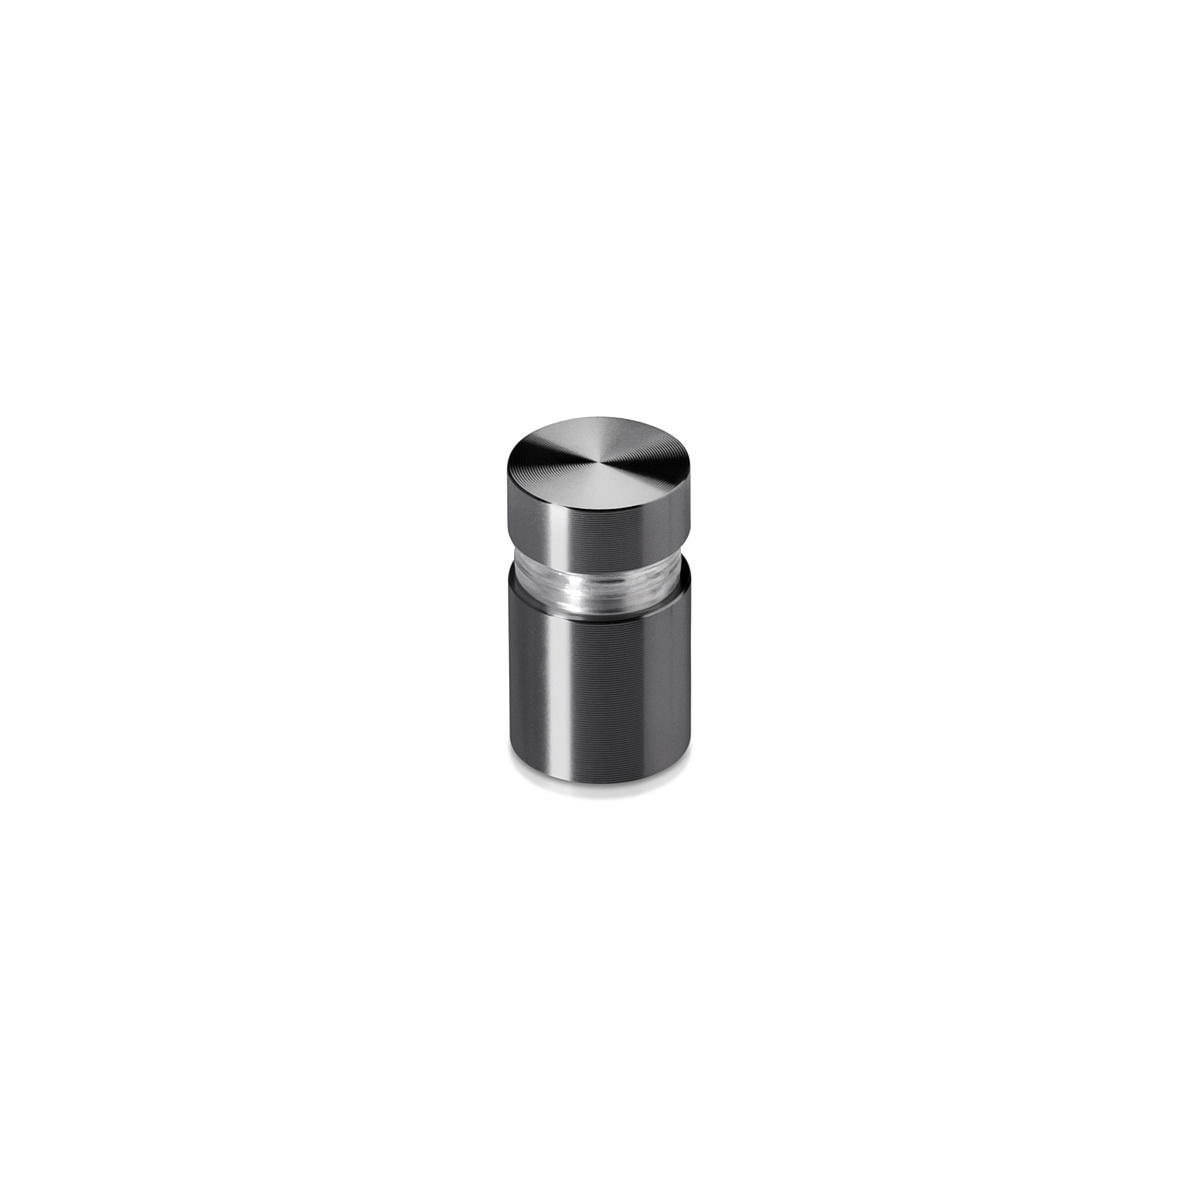 1/2'' Diameter X 1/2'' Barrel Length, Aluminum Flat Head Standoffs, Titanium Anodized Finish Easy Fasten Standoff (For Inside / Outside use) Tamper Proof Standoff